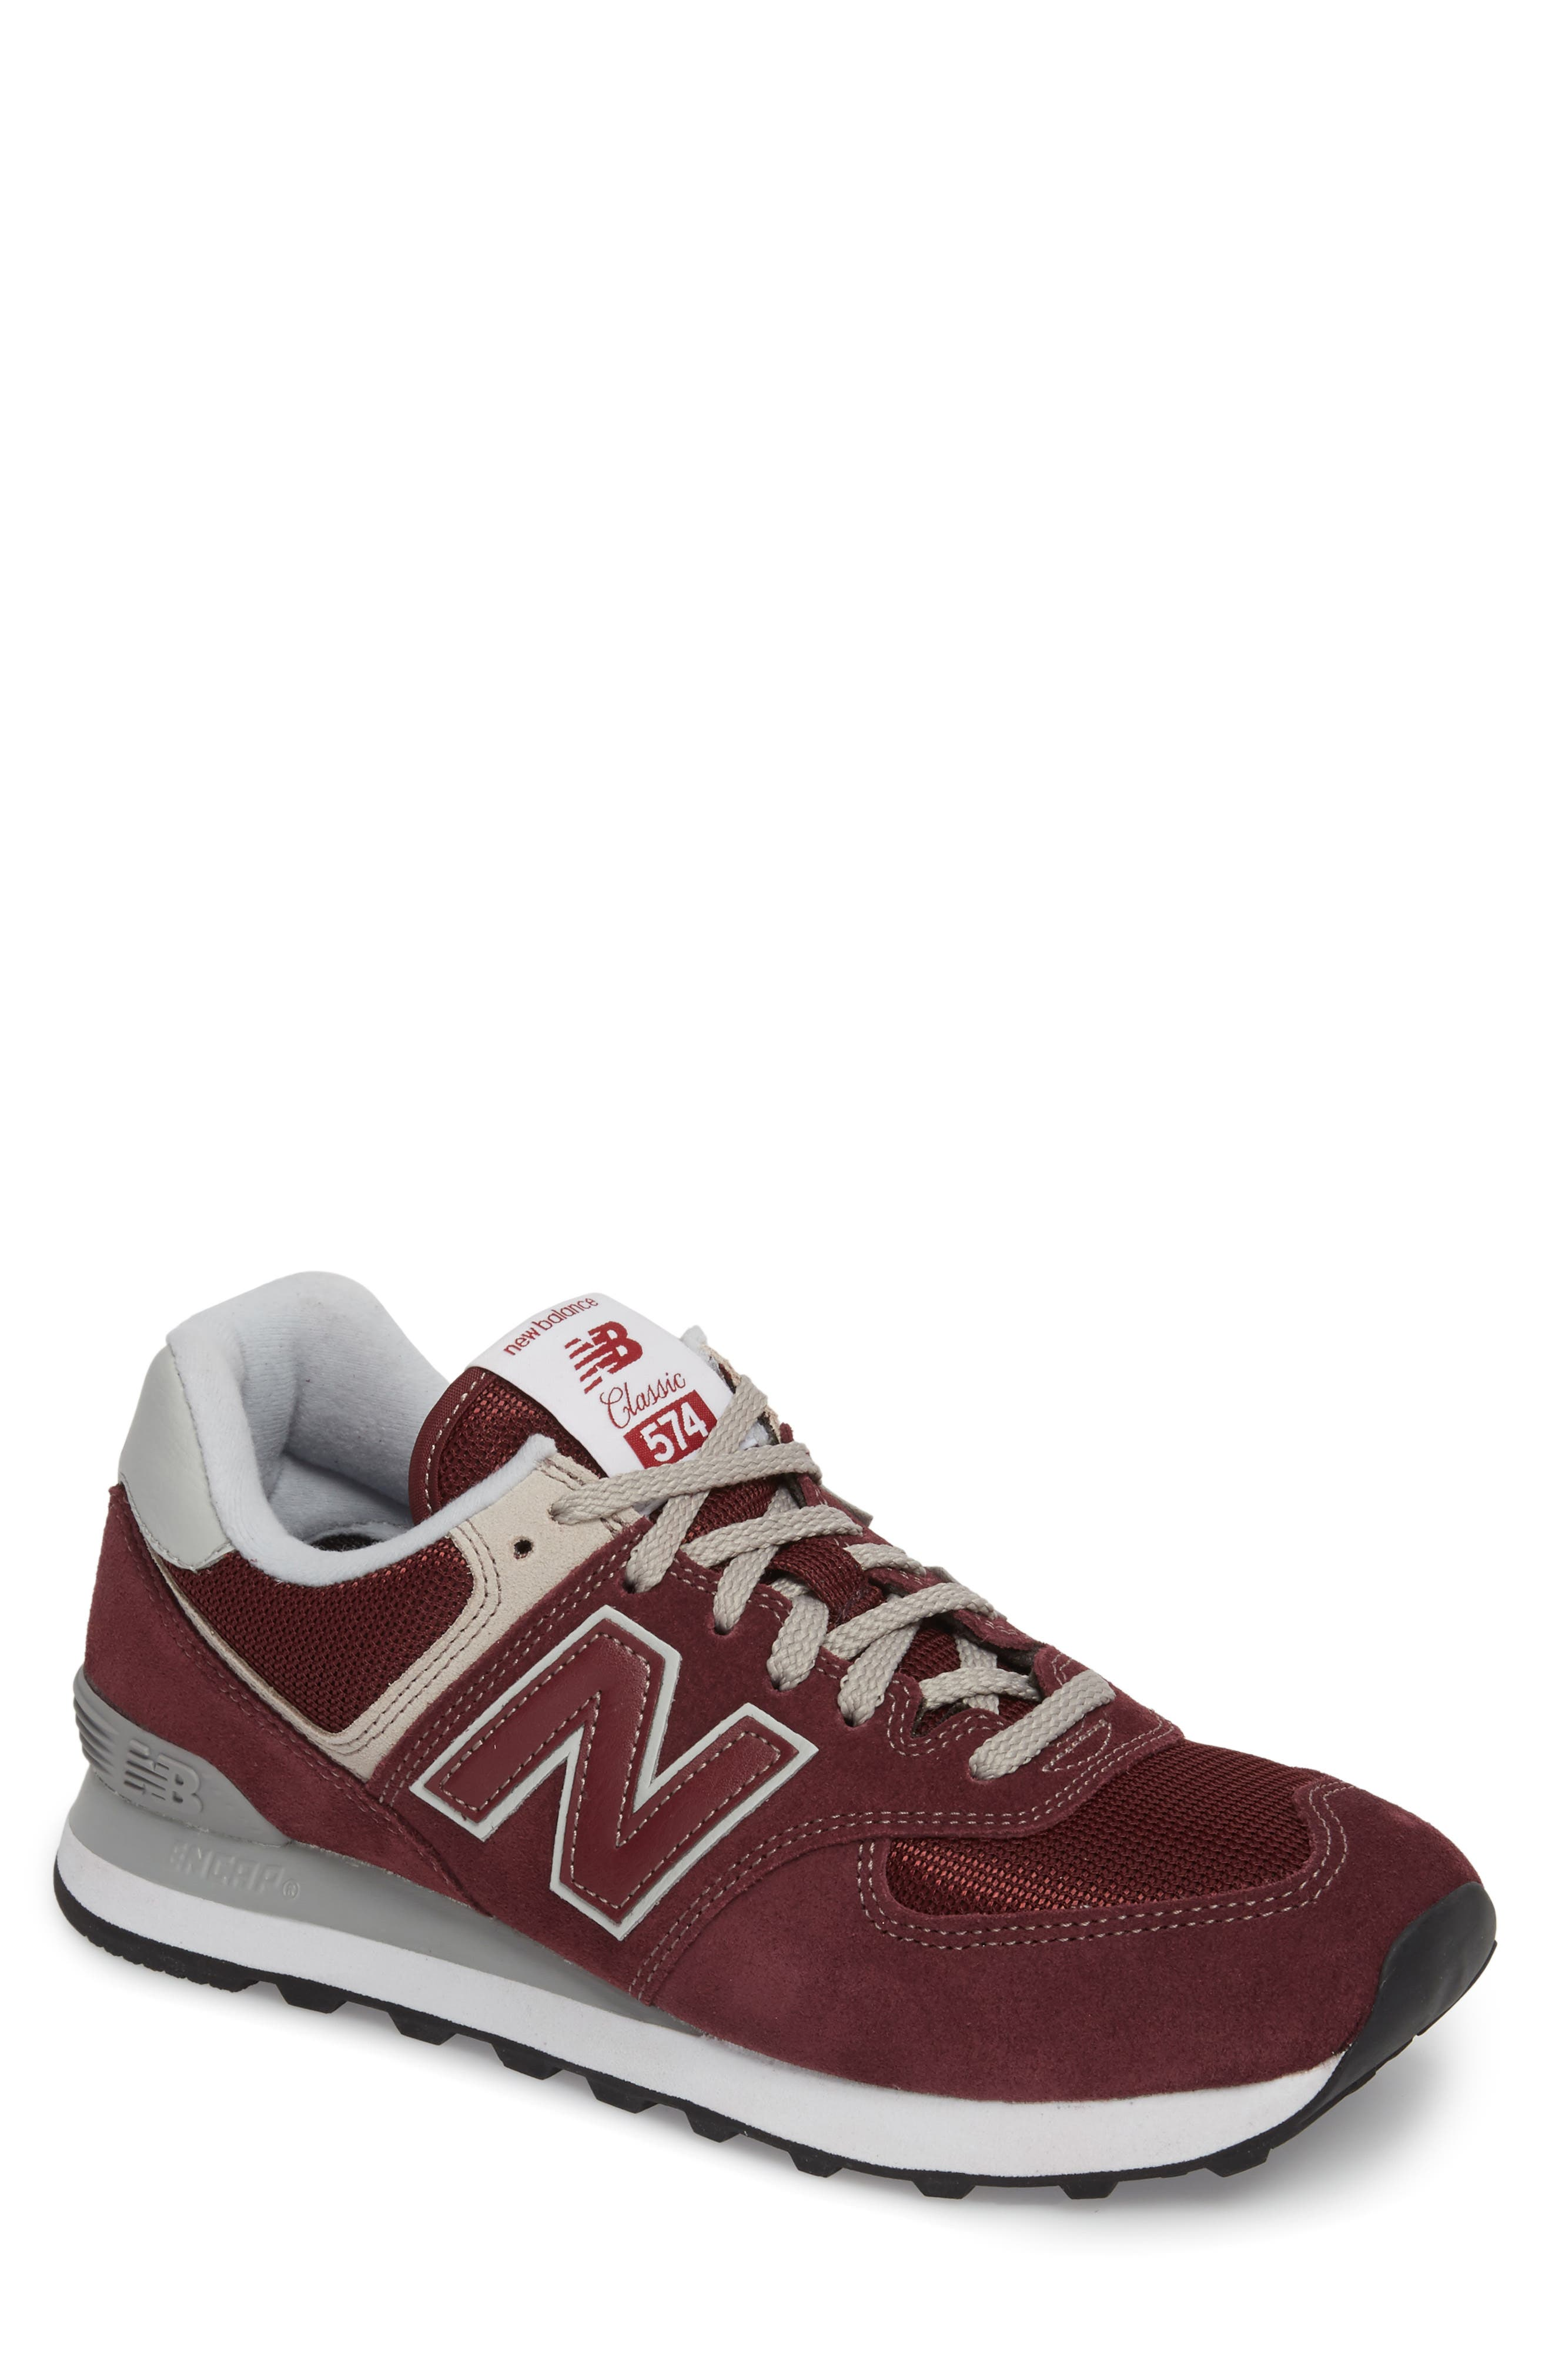 NEW BALANCE, 574 Classic Sneaker, Main thumbnail 1, color, BURGUNDY